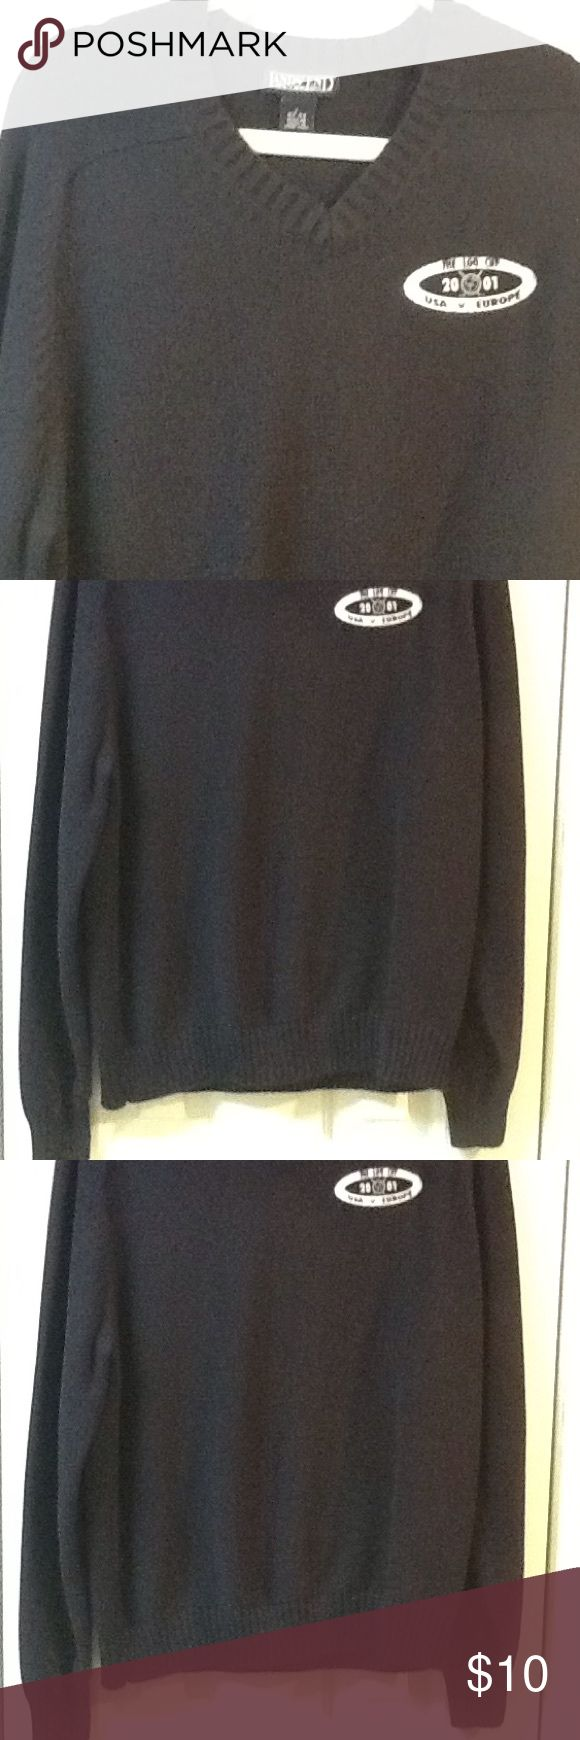 Men's Size L Golf Sweater by Lands End Navy Lands End size large v-neck cotton with golf logo. USA vs Europe. In great condition. Navy blue. Lands' End Sweaters V-Neck